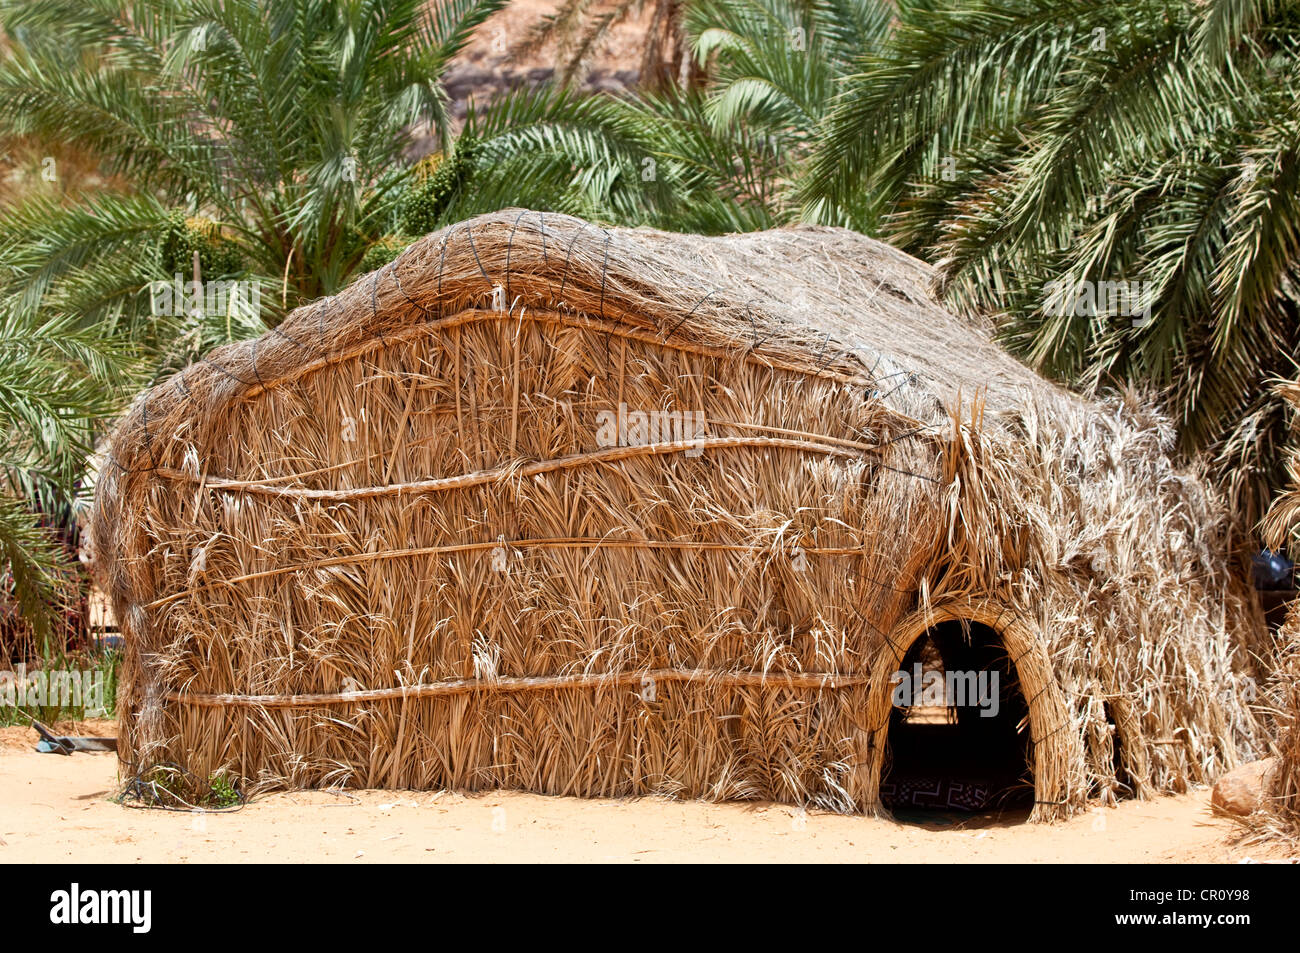 Mauritania, Adrar Region, Mhaireth, nomadic hut, made of palms in the oasis of Mhaireth - Stock Image